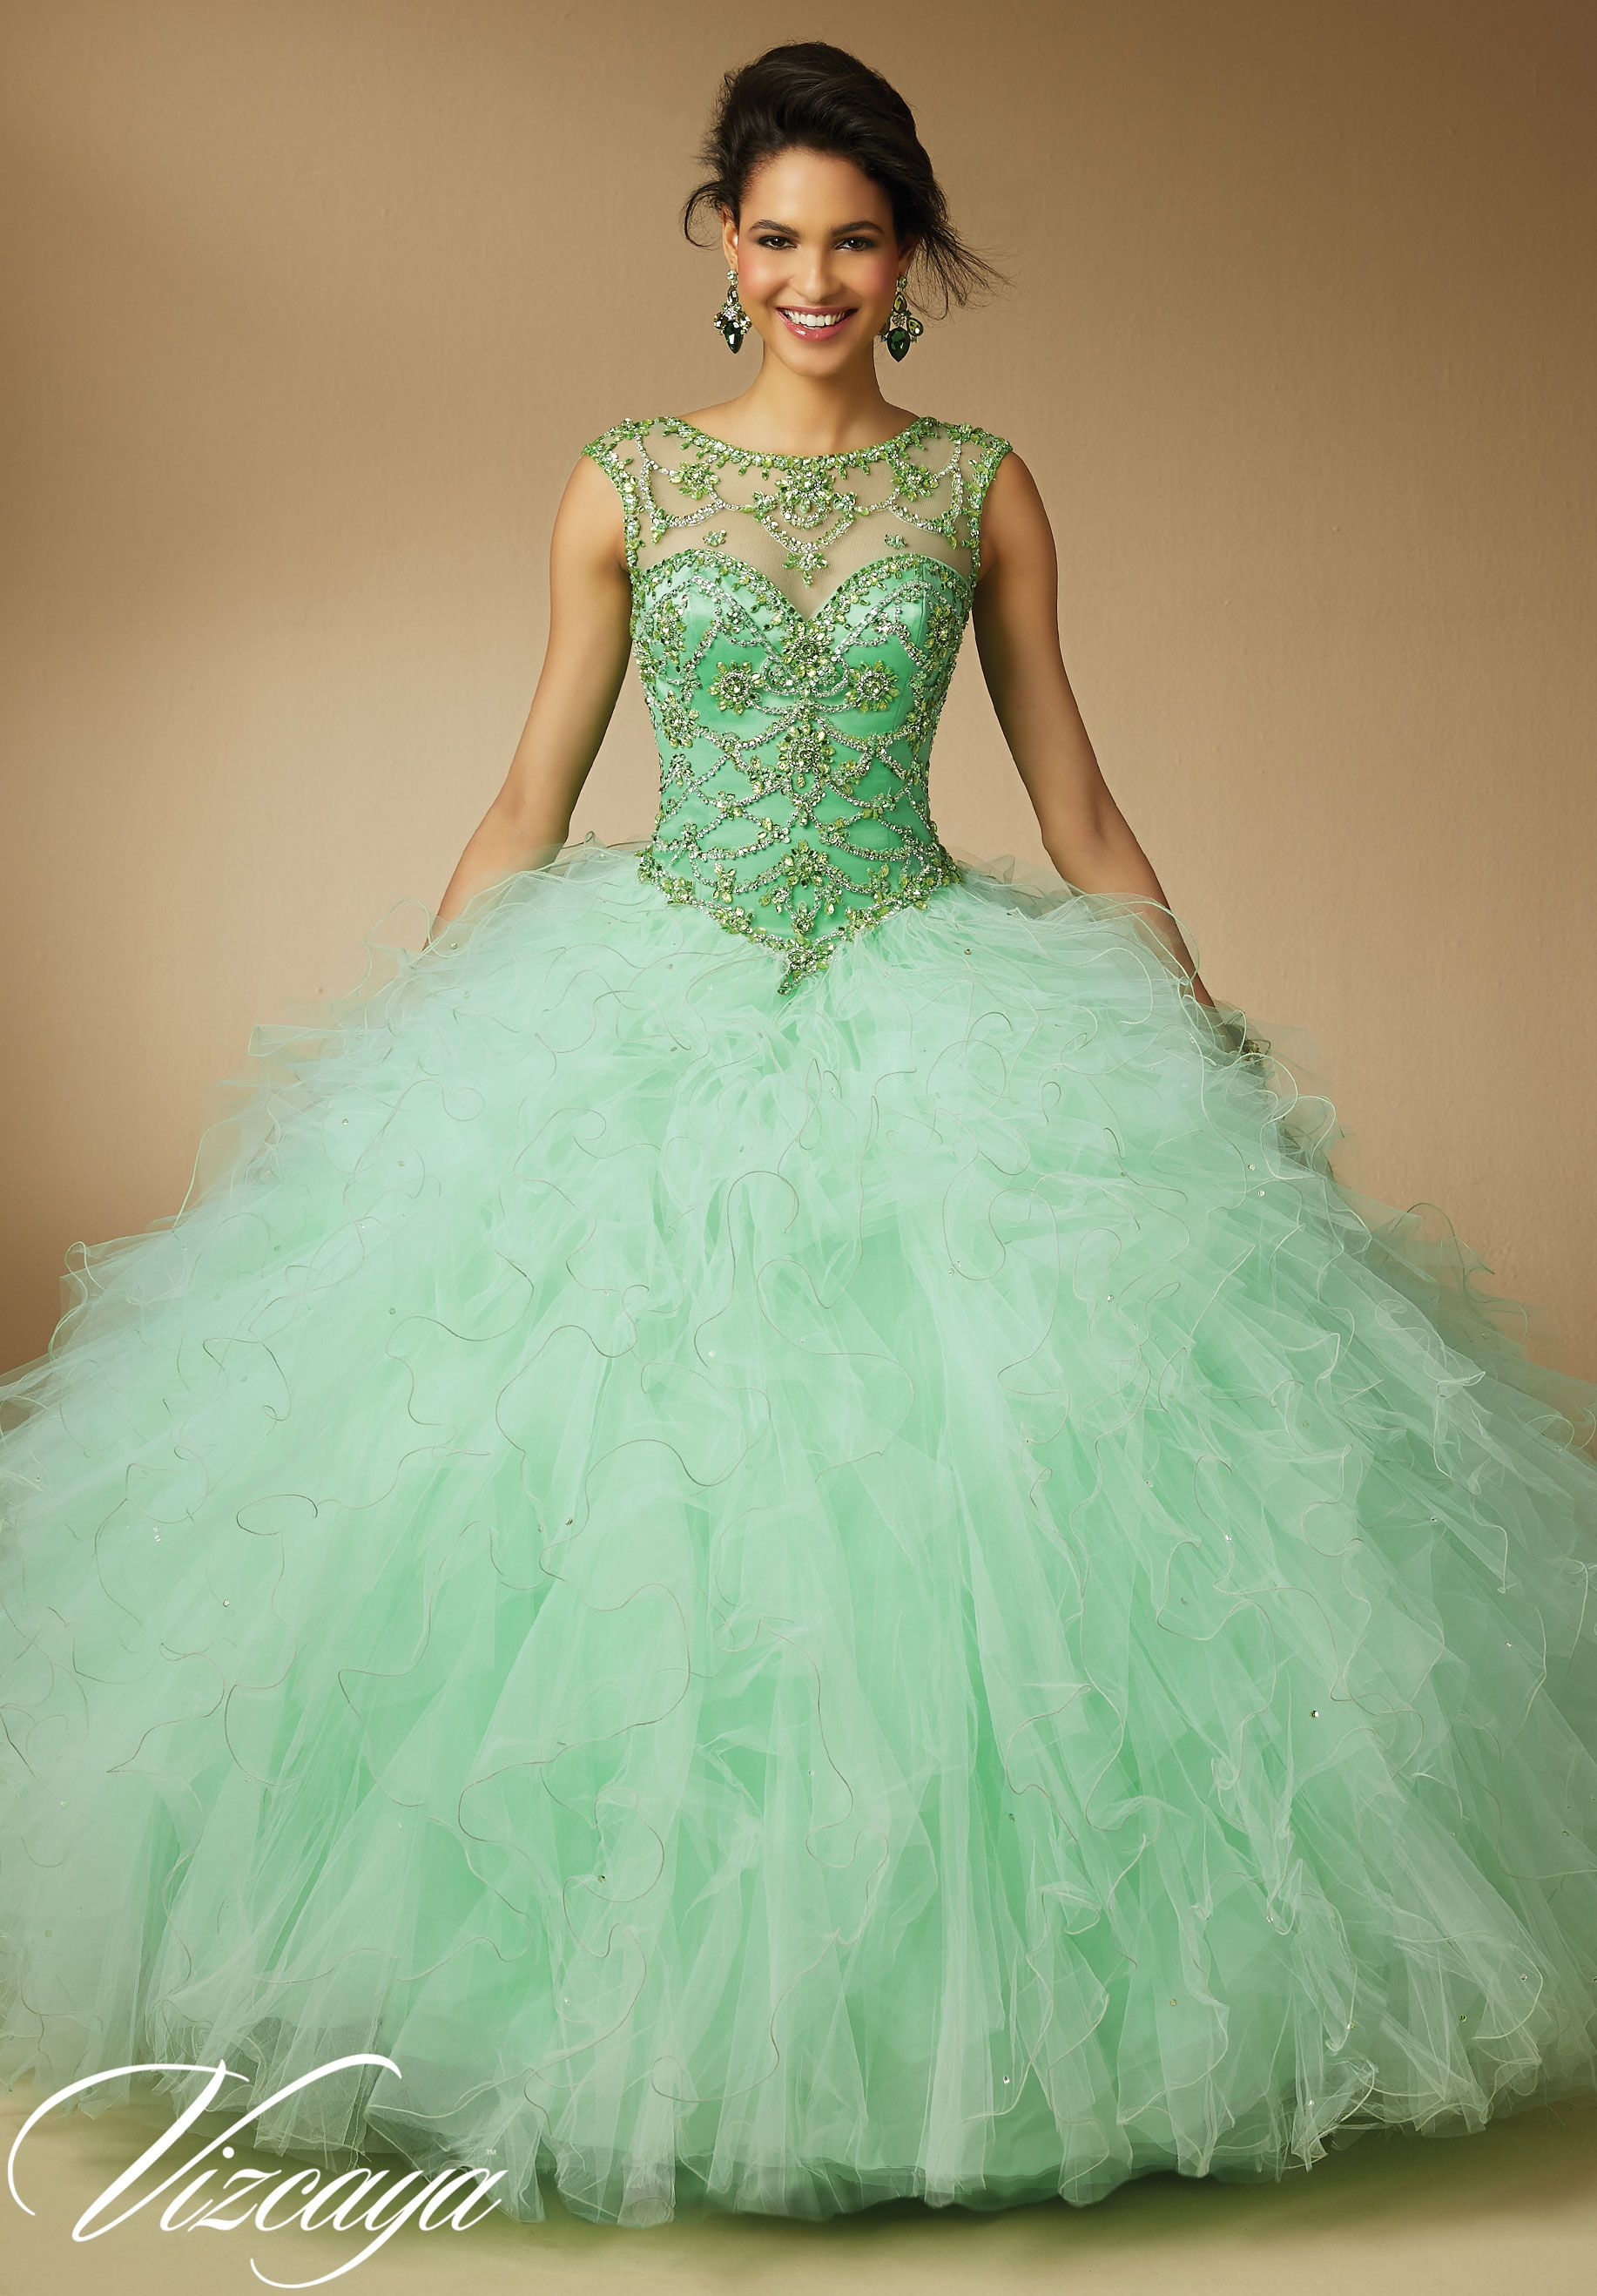 b0378f67b57d Quinceanera Dress 89041 Jeweled Beading on Ruffled Tulle ...